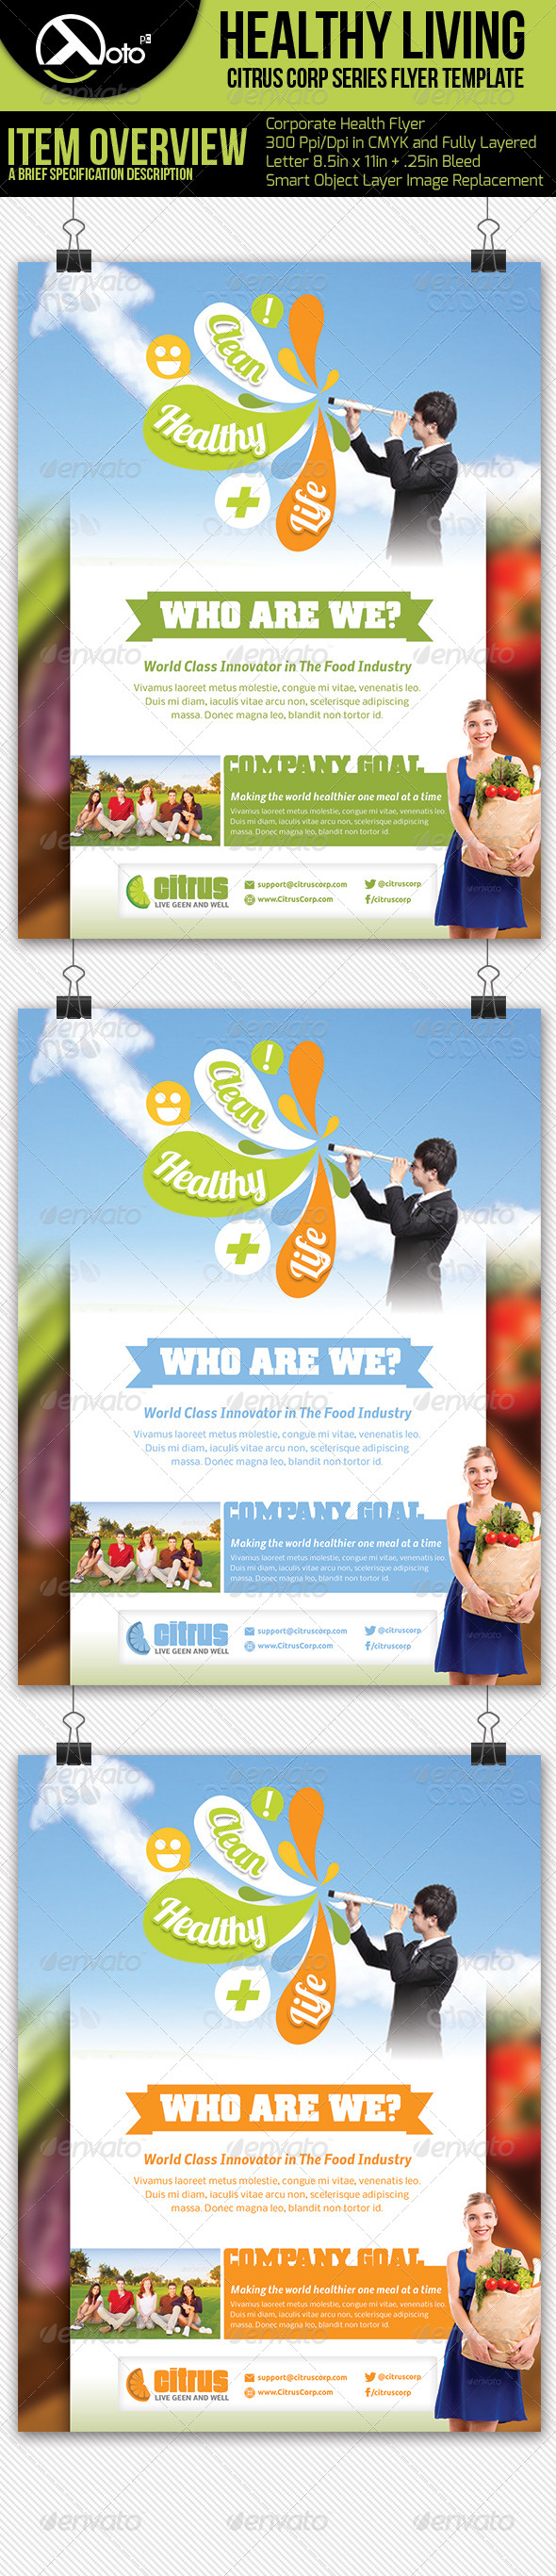 Healthy Living Flyers - Corporate Flyers